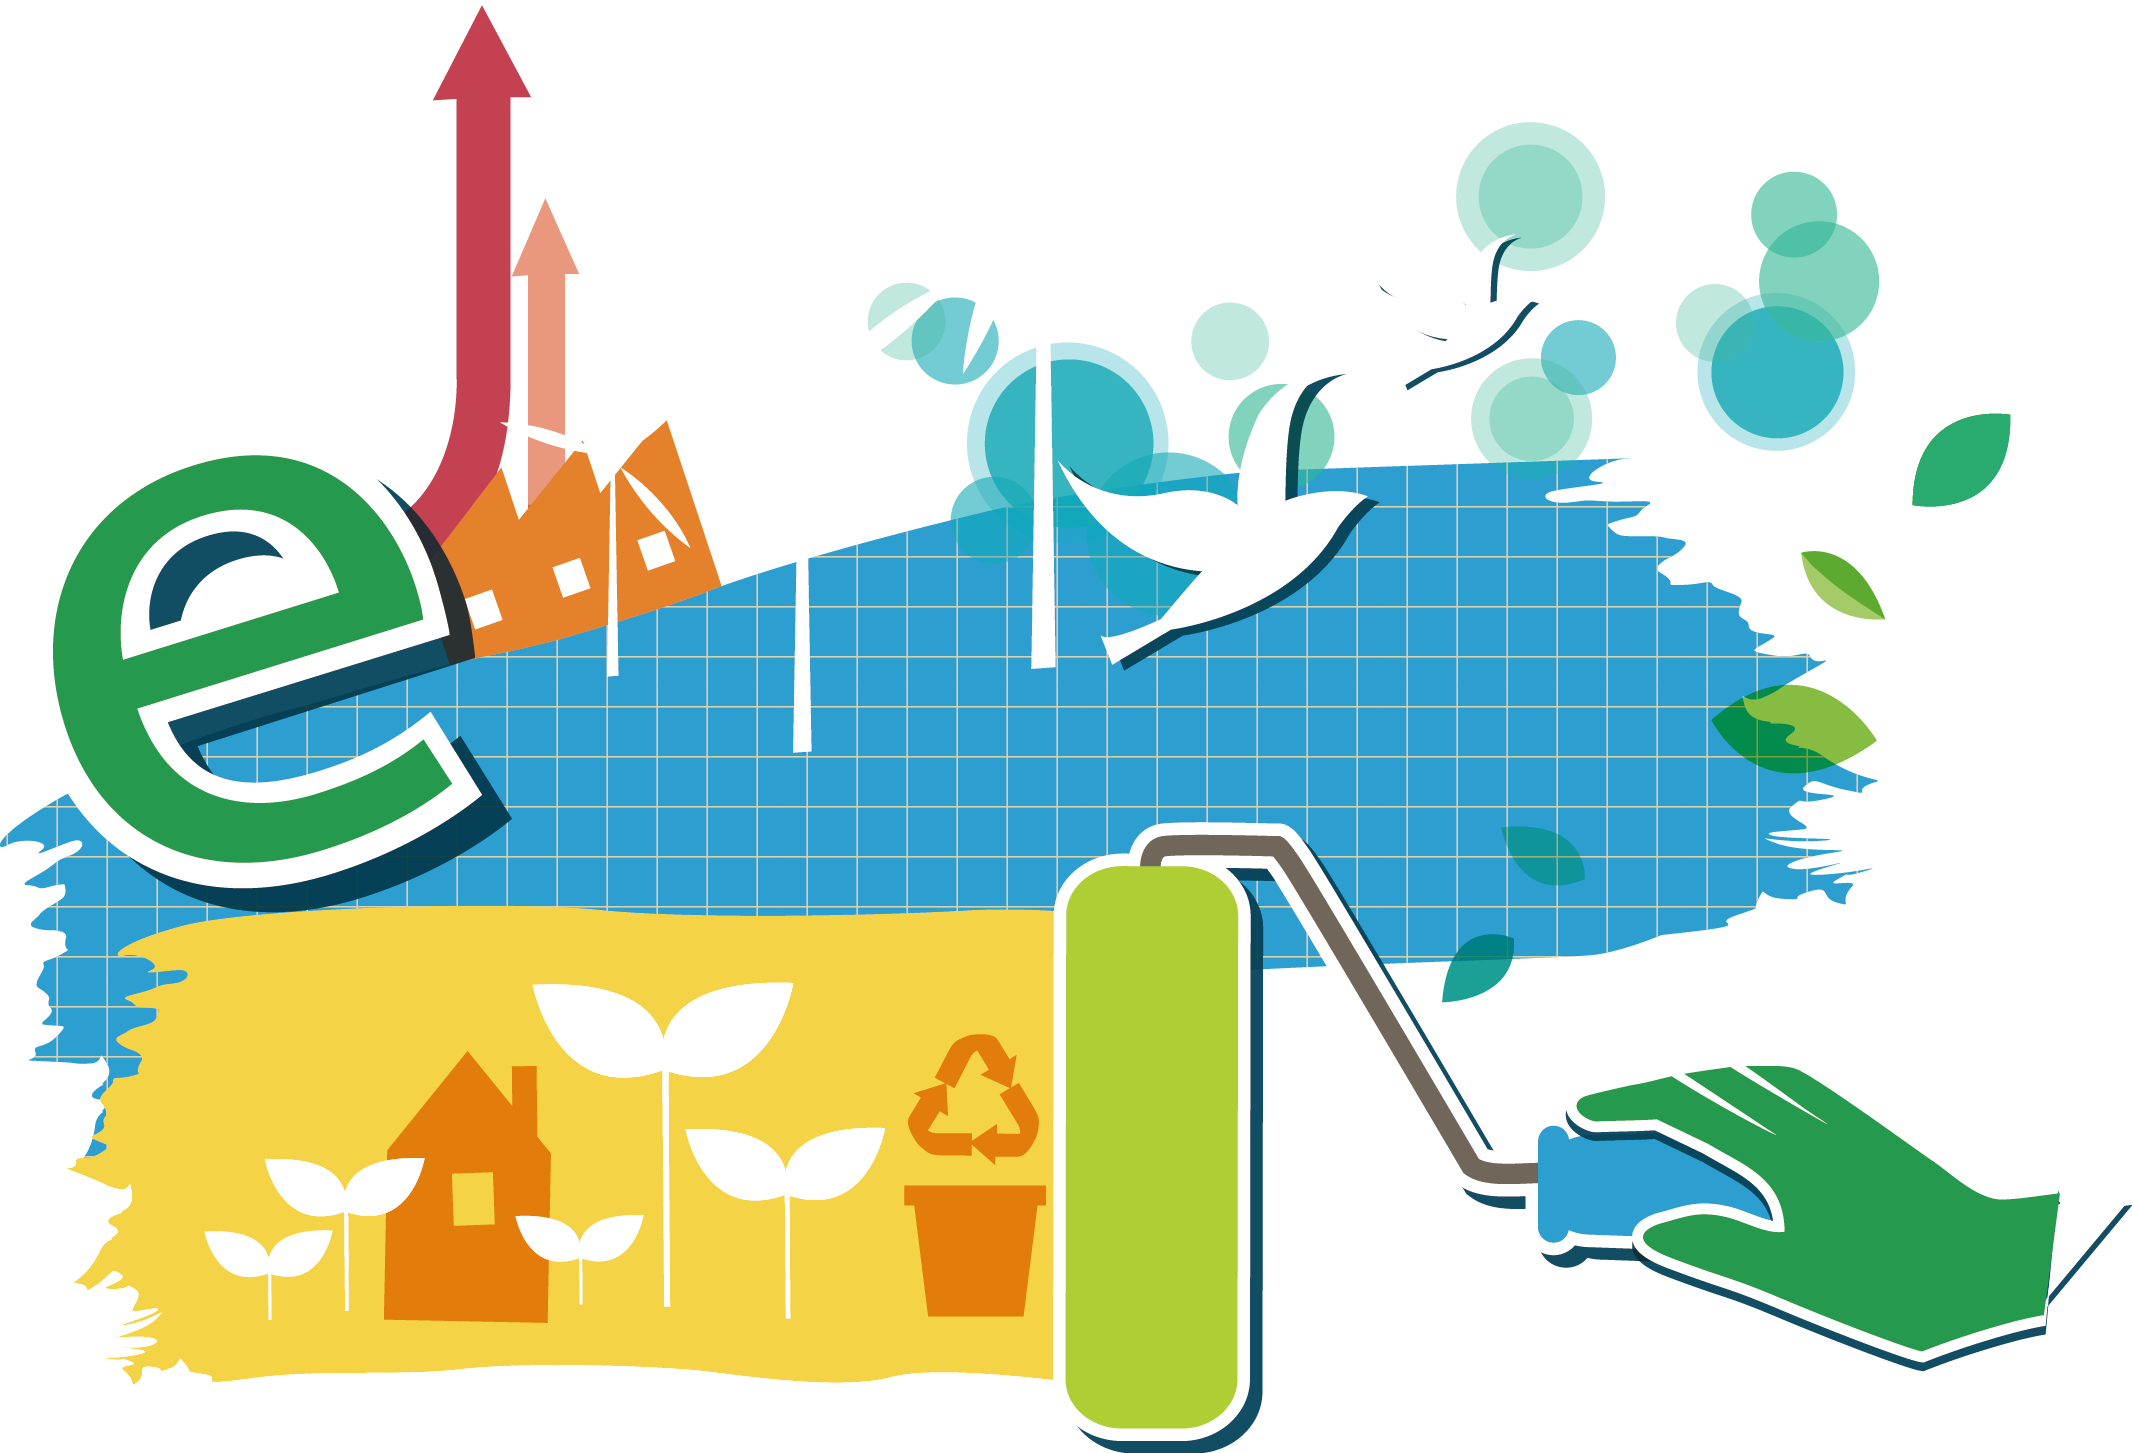 Natural ecology icon clean. Energy clipart environment protection